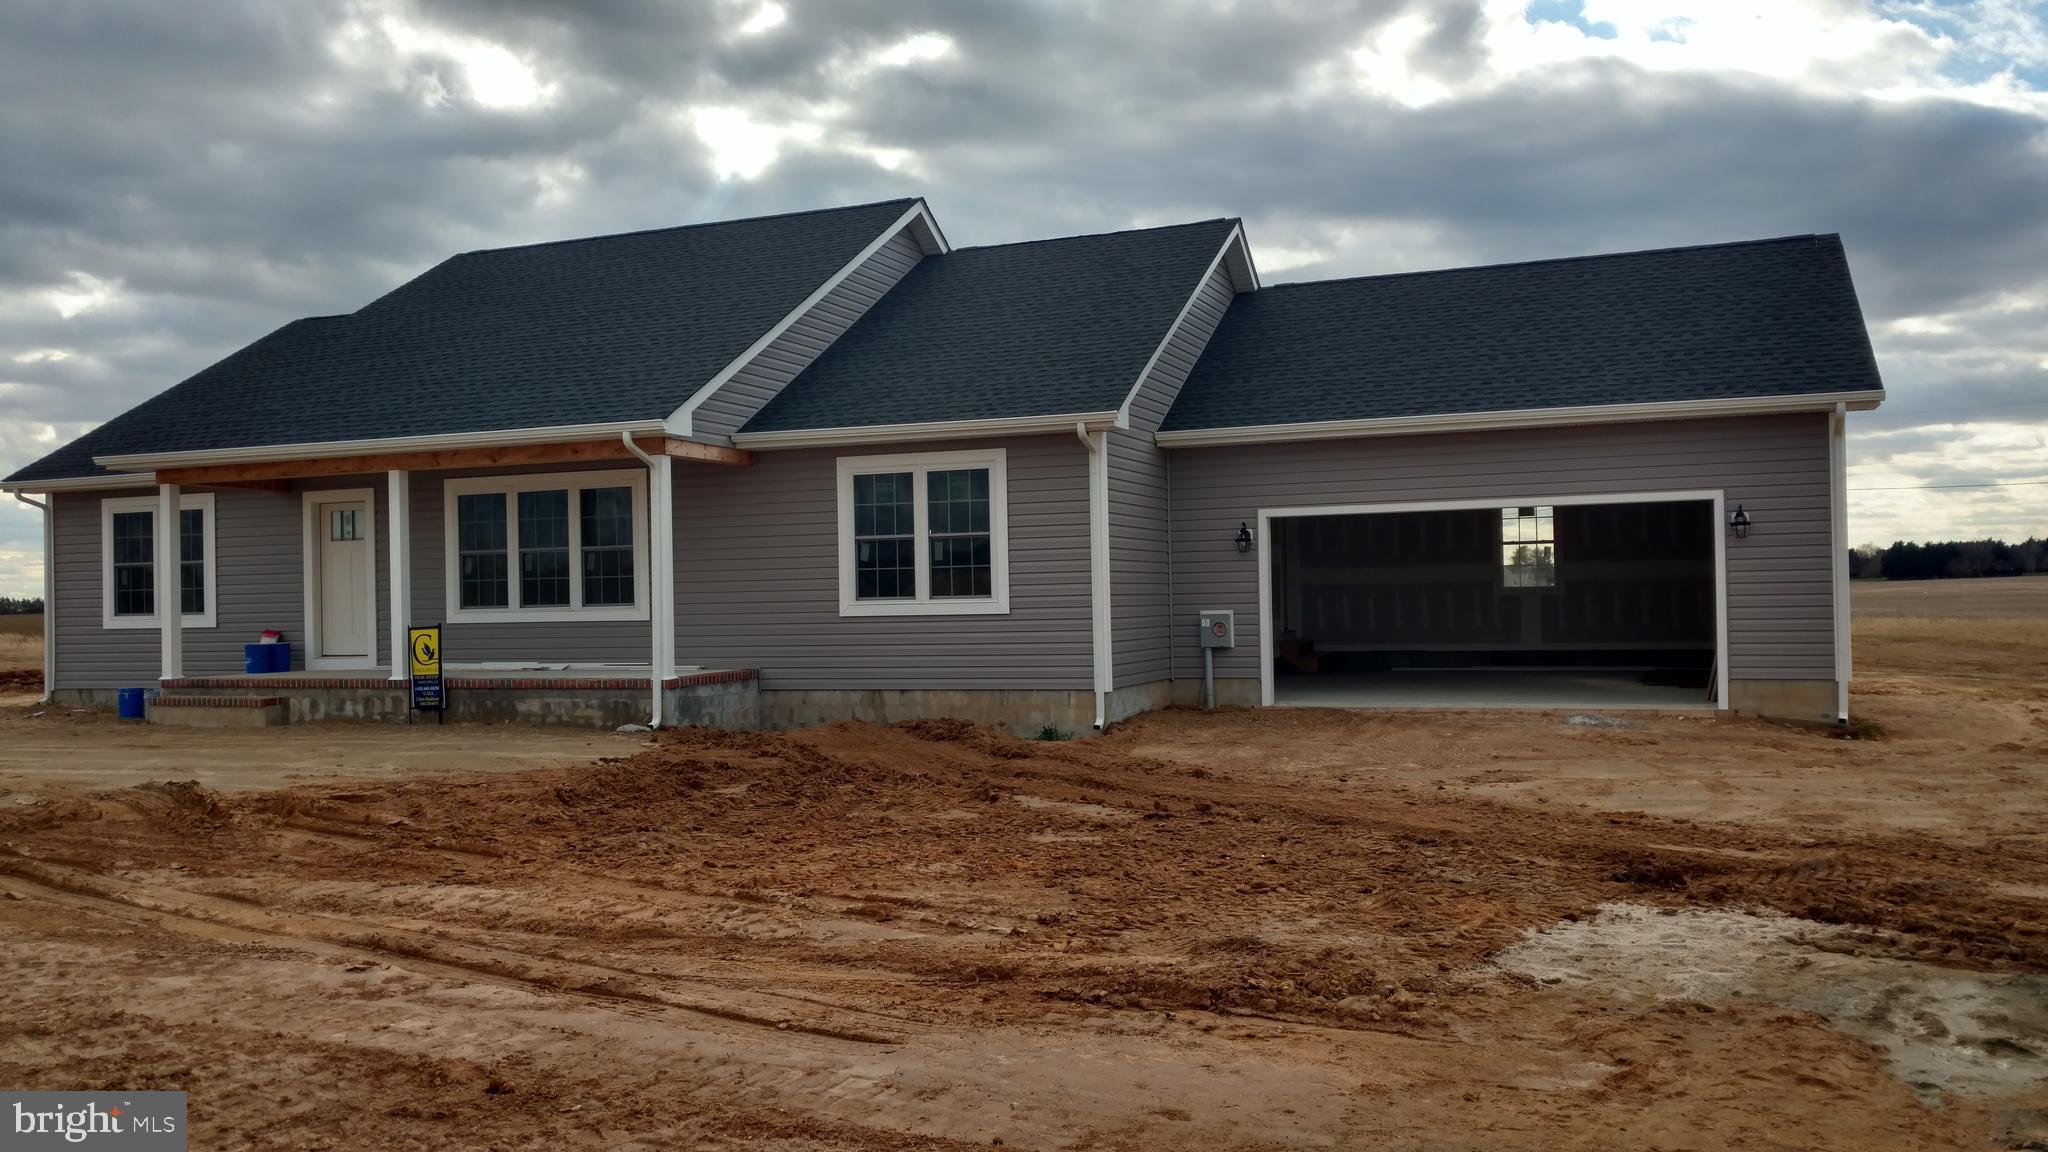 CONSTRUCTION UNDERWAY. 3 BEDROOM 2 BATH RANCHER WITH GARAGE. ONE OF 9 LOTS TWO PICK FROM. HOUSE GOIN